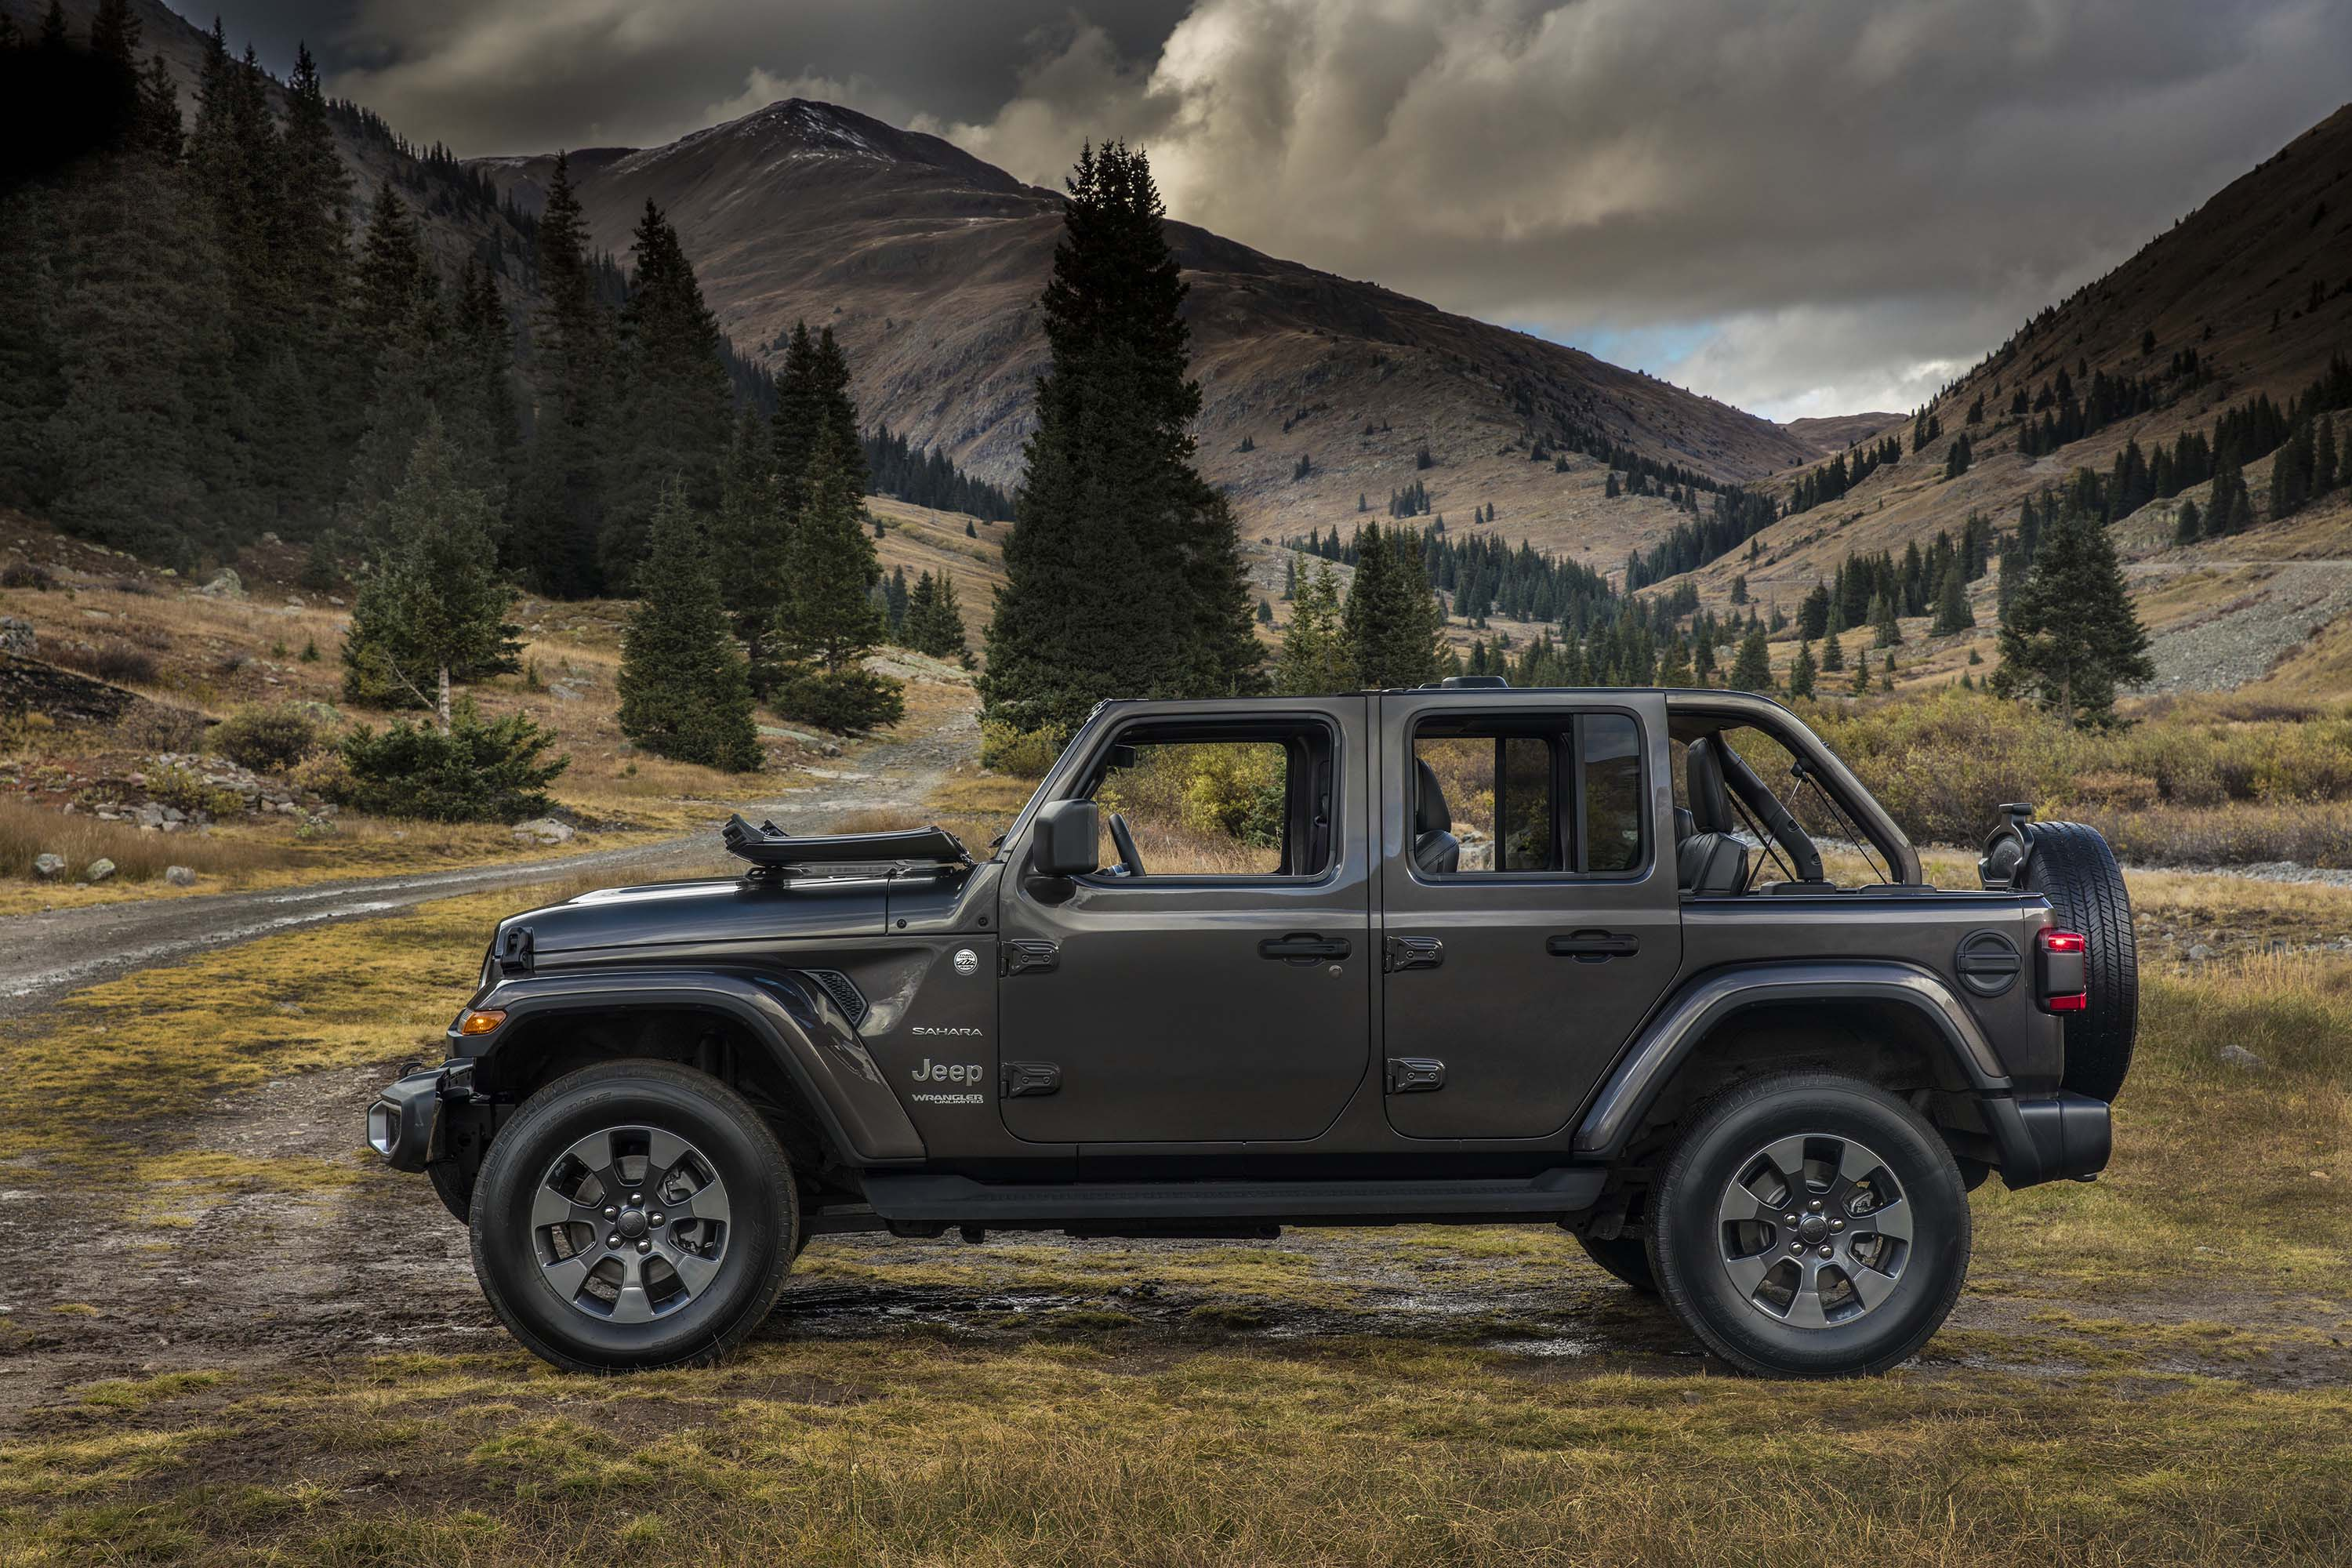 2020 Jeep Wrangler News Diesel Phev Price >> 2020 Jeep Wrangler Review Ratings Specs Prices And